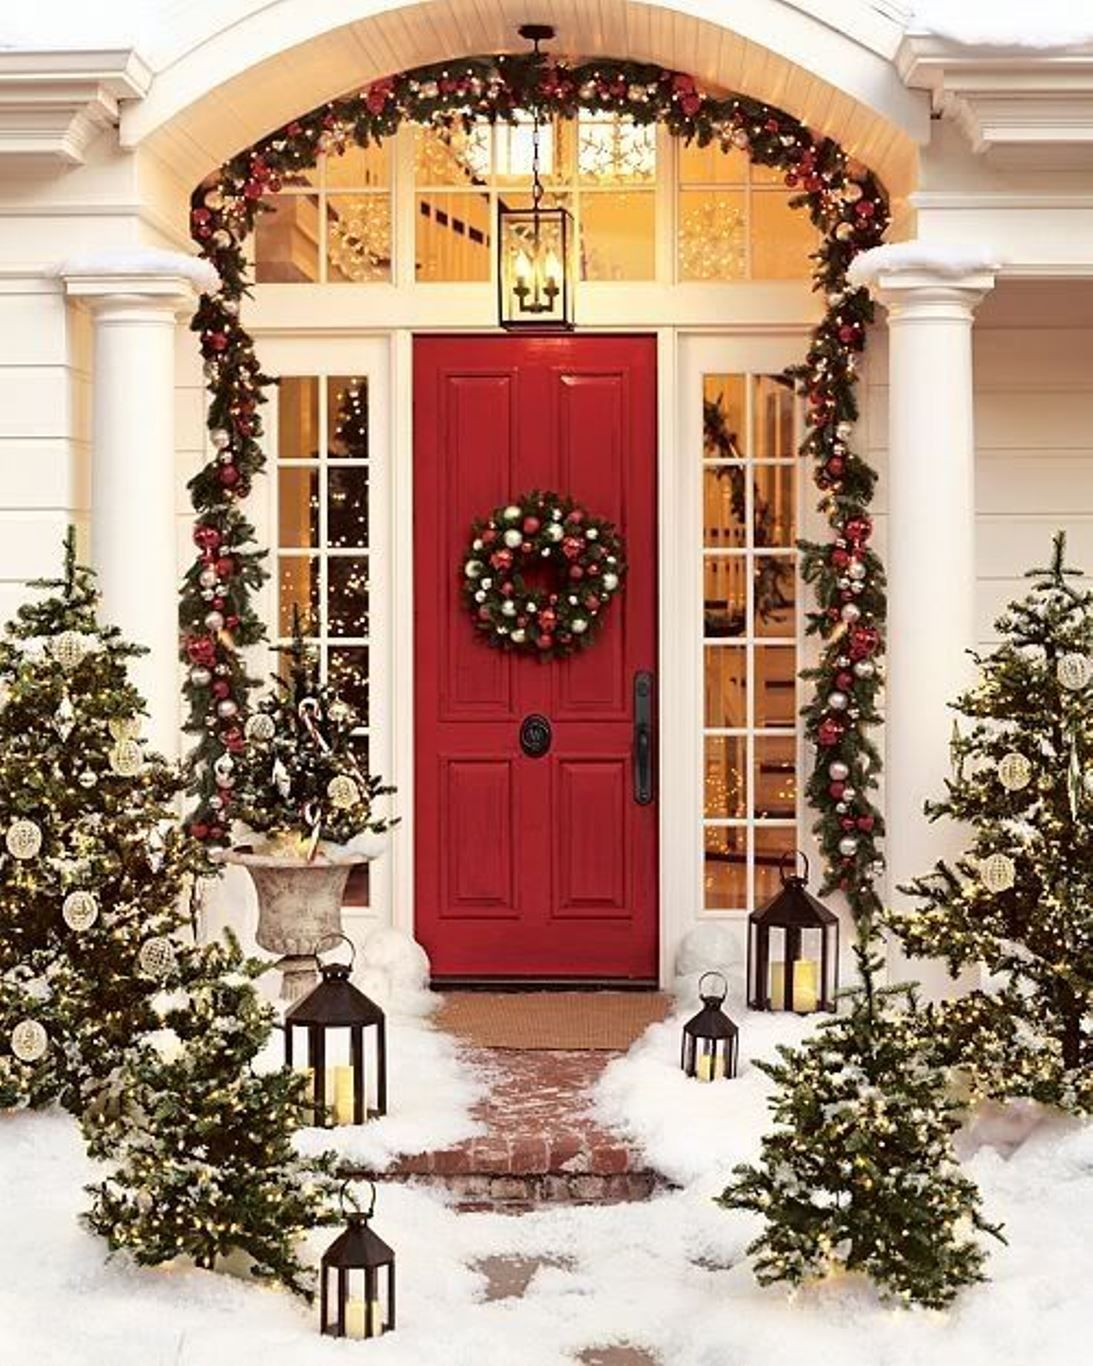 How to decorate house for christmas outdoor - Cosita Creative Navidad